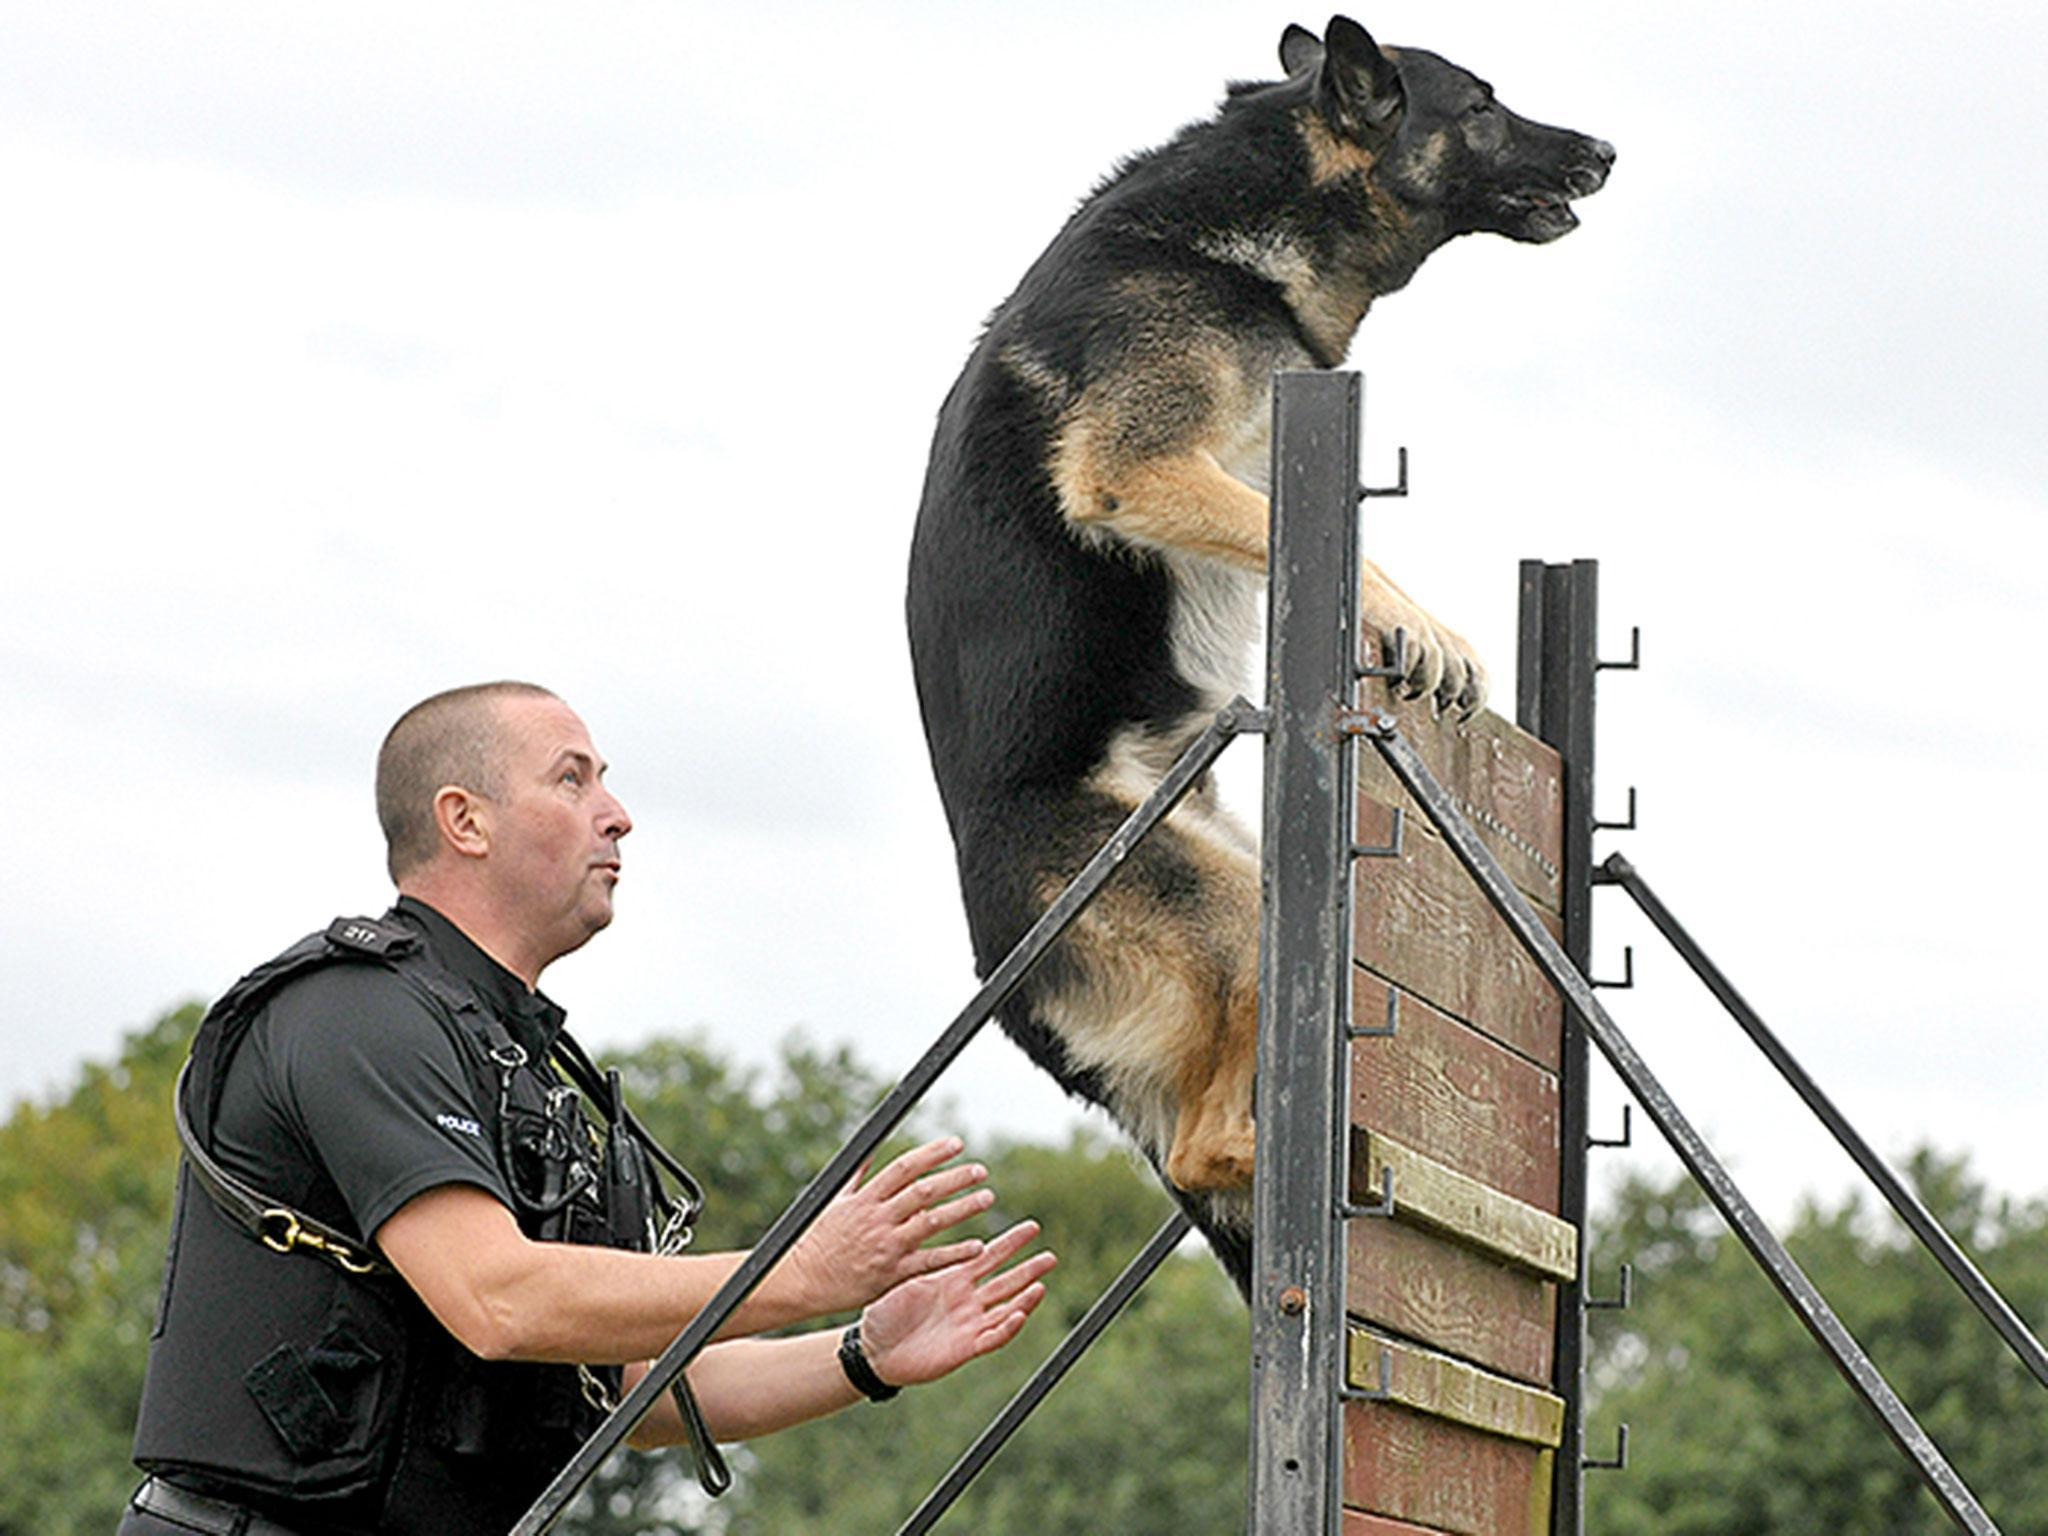 Police Dog Who Made 170 Arrests Falls Asleep Peacefully